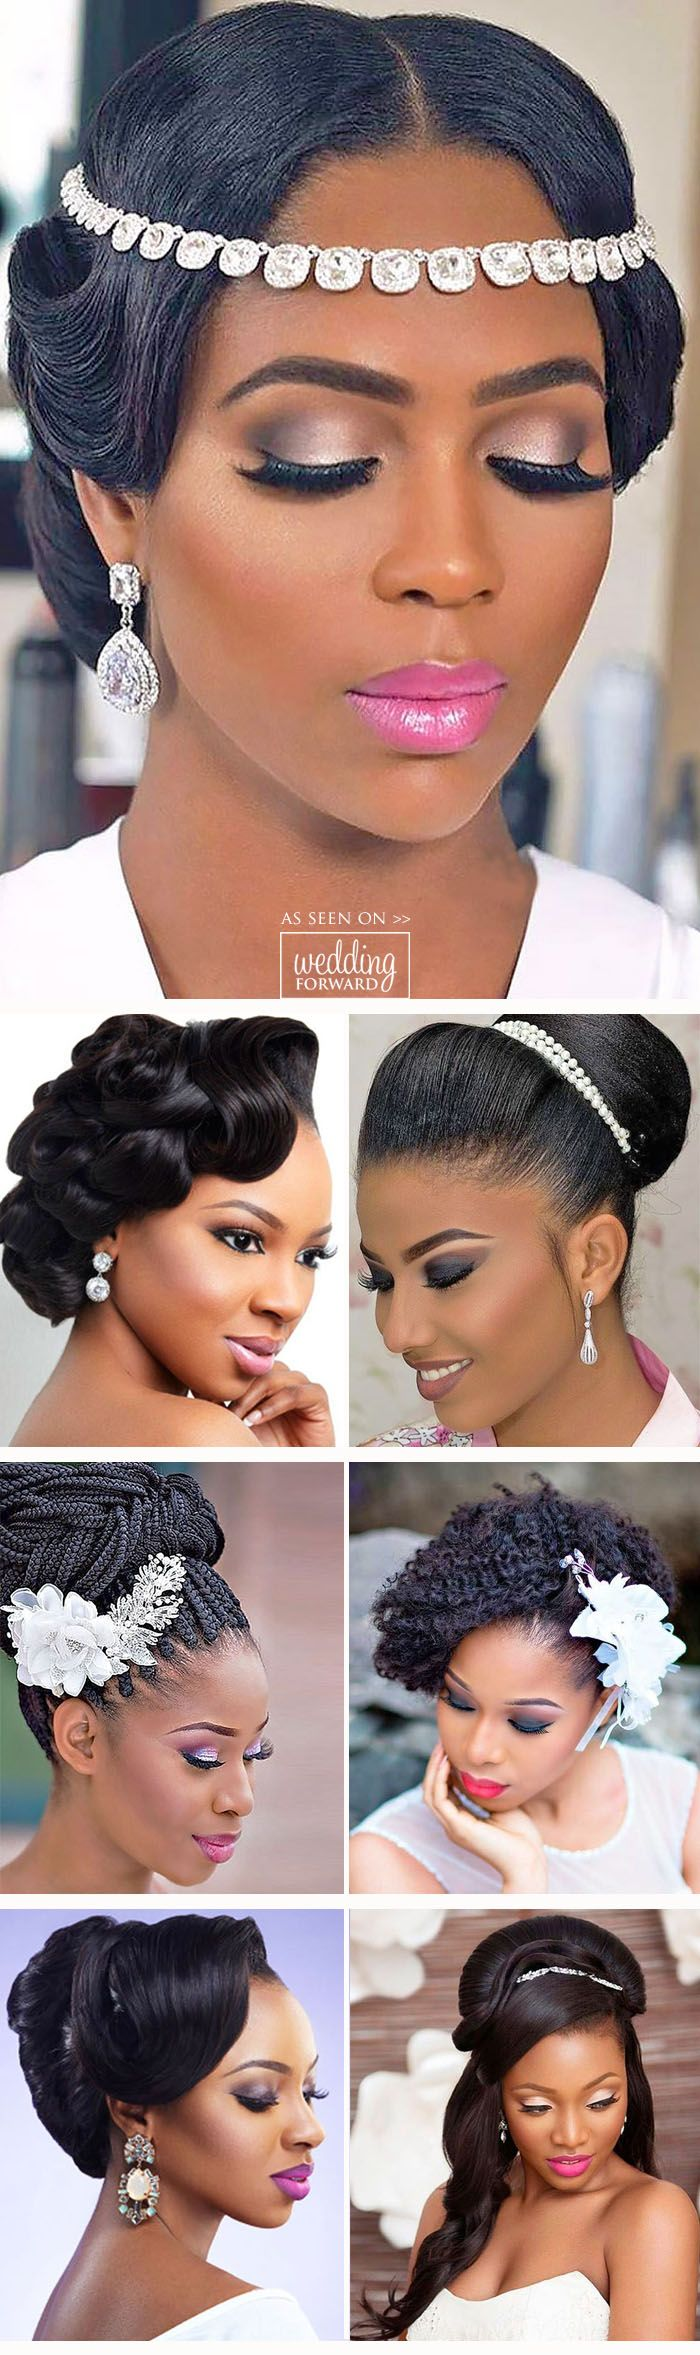 best 10+ natural wedding hairstyles ideas on pinterest | natural